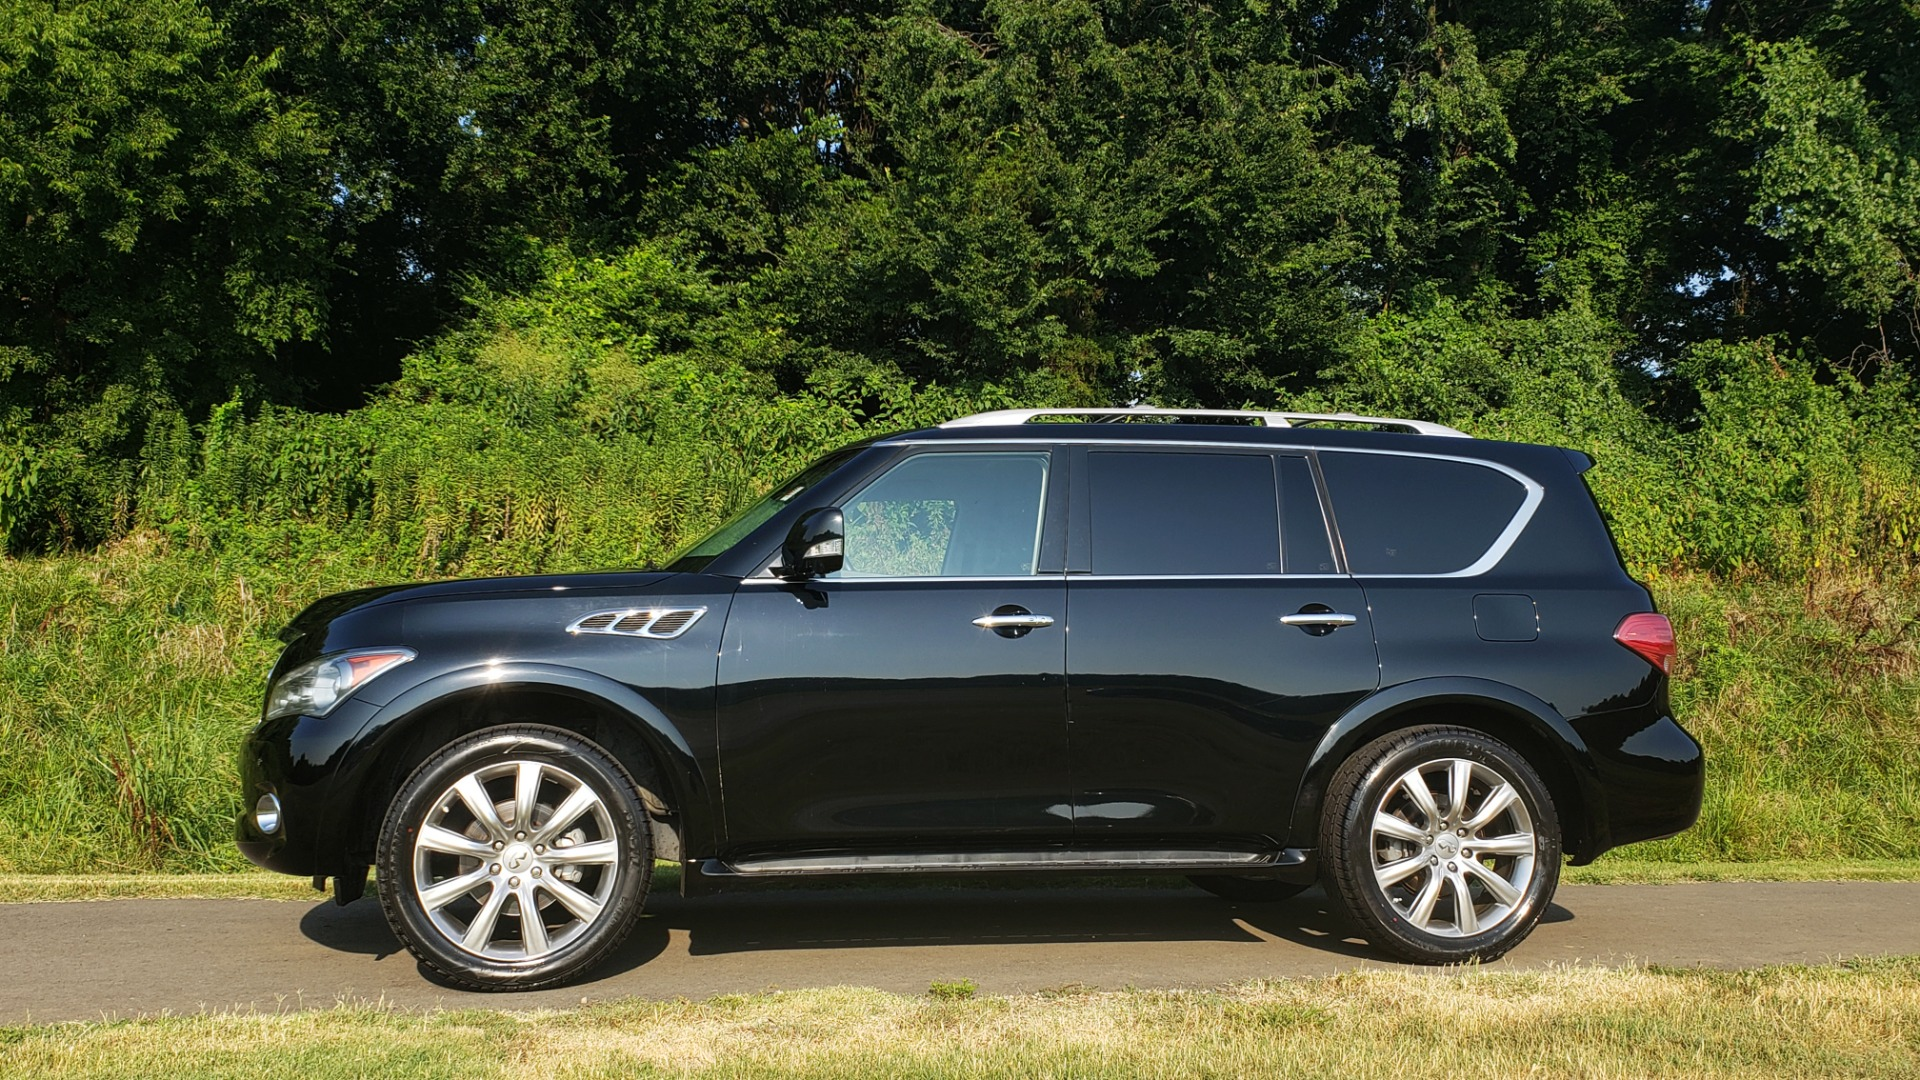 Used 2013 INFINITI QX56 NAV / SUNROOF / BOSE / THEATER / 3-ROW / REARVIEW for sale $21,495 at Formula Imports in Charlotte NC 28227 2